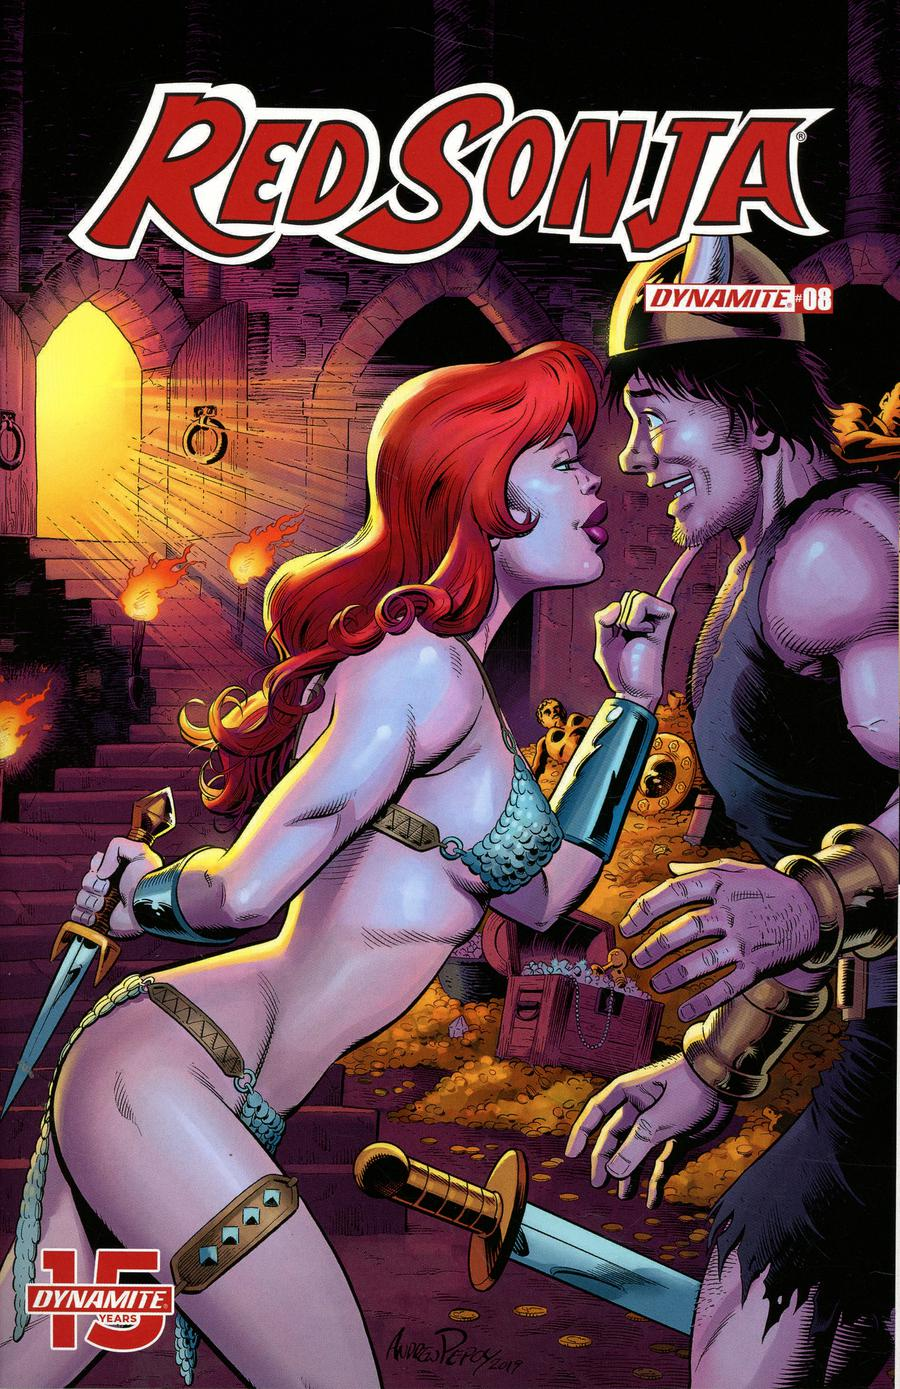 Red Sonja Vol 8 #8 Cover G Incentive Andrew Pepoy Seduction Color Variant Cover